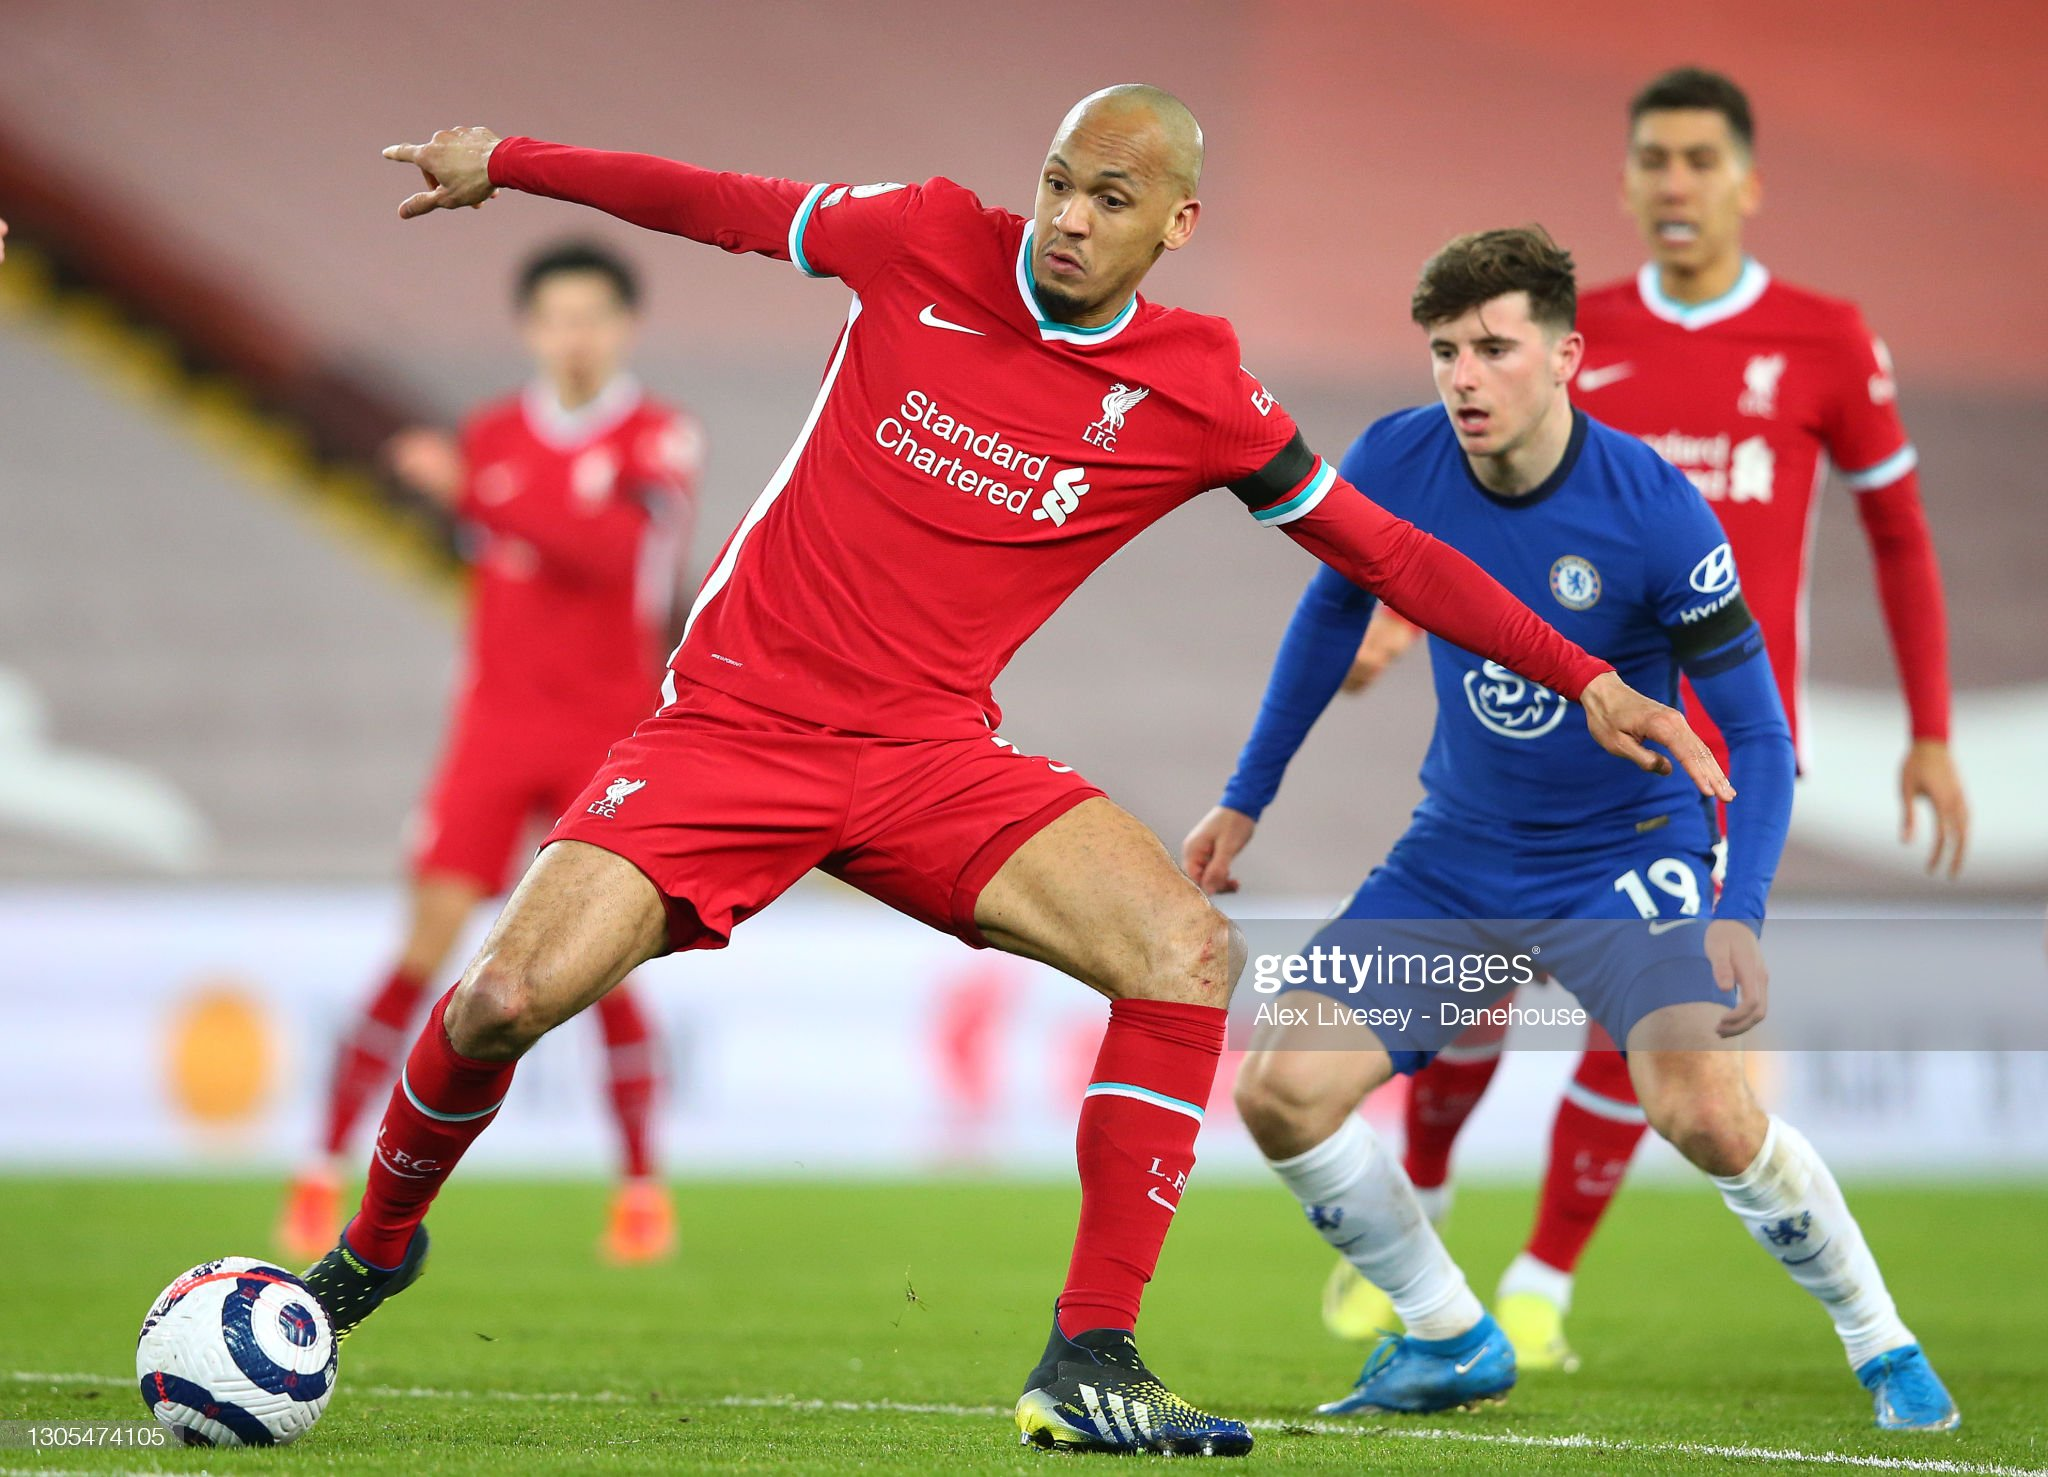 Liverpool vs Chelsea Preview, prediction and odds